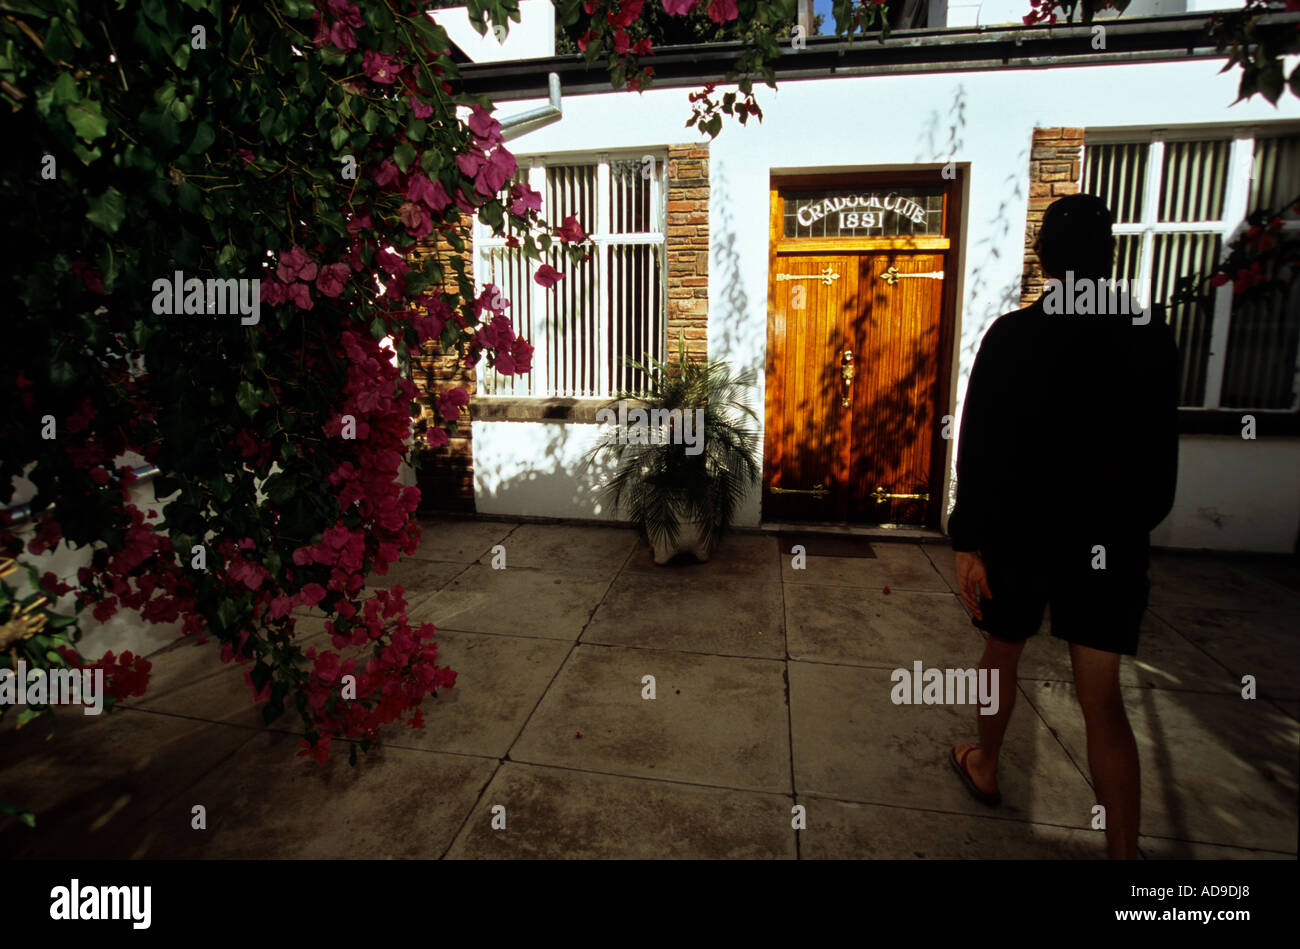 Cradock club, Cradock, Eastern Cape, South Africa. - Stock Image